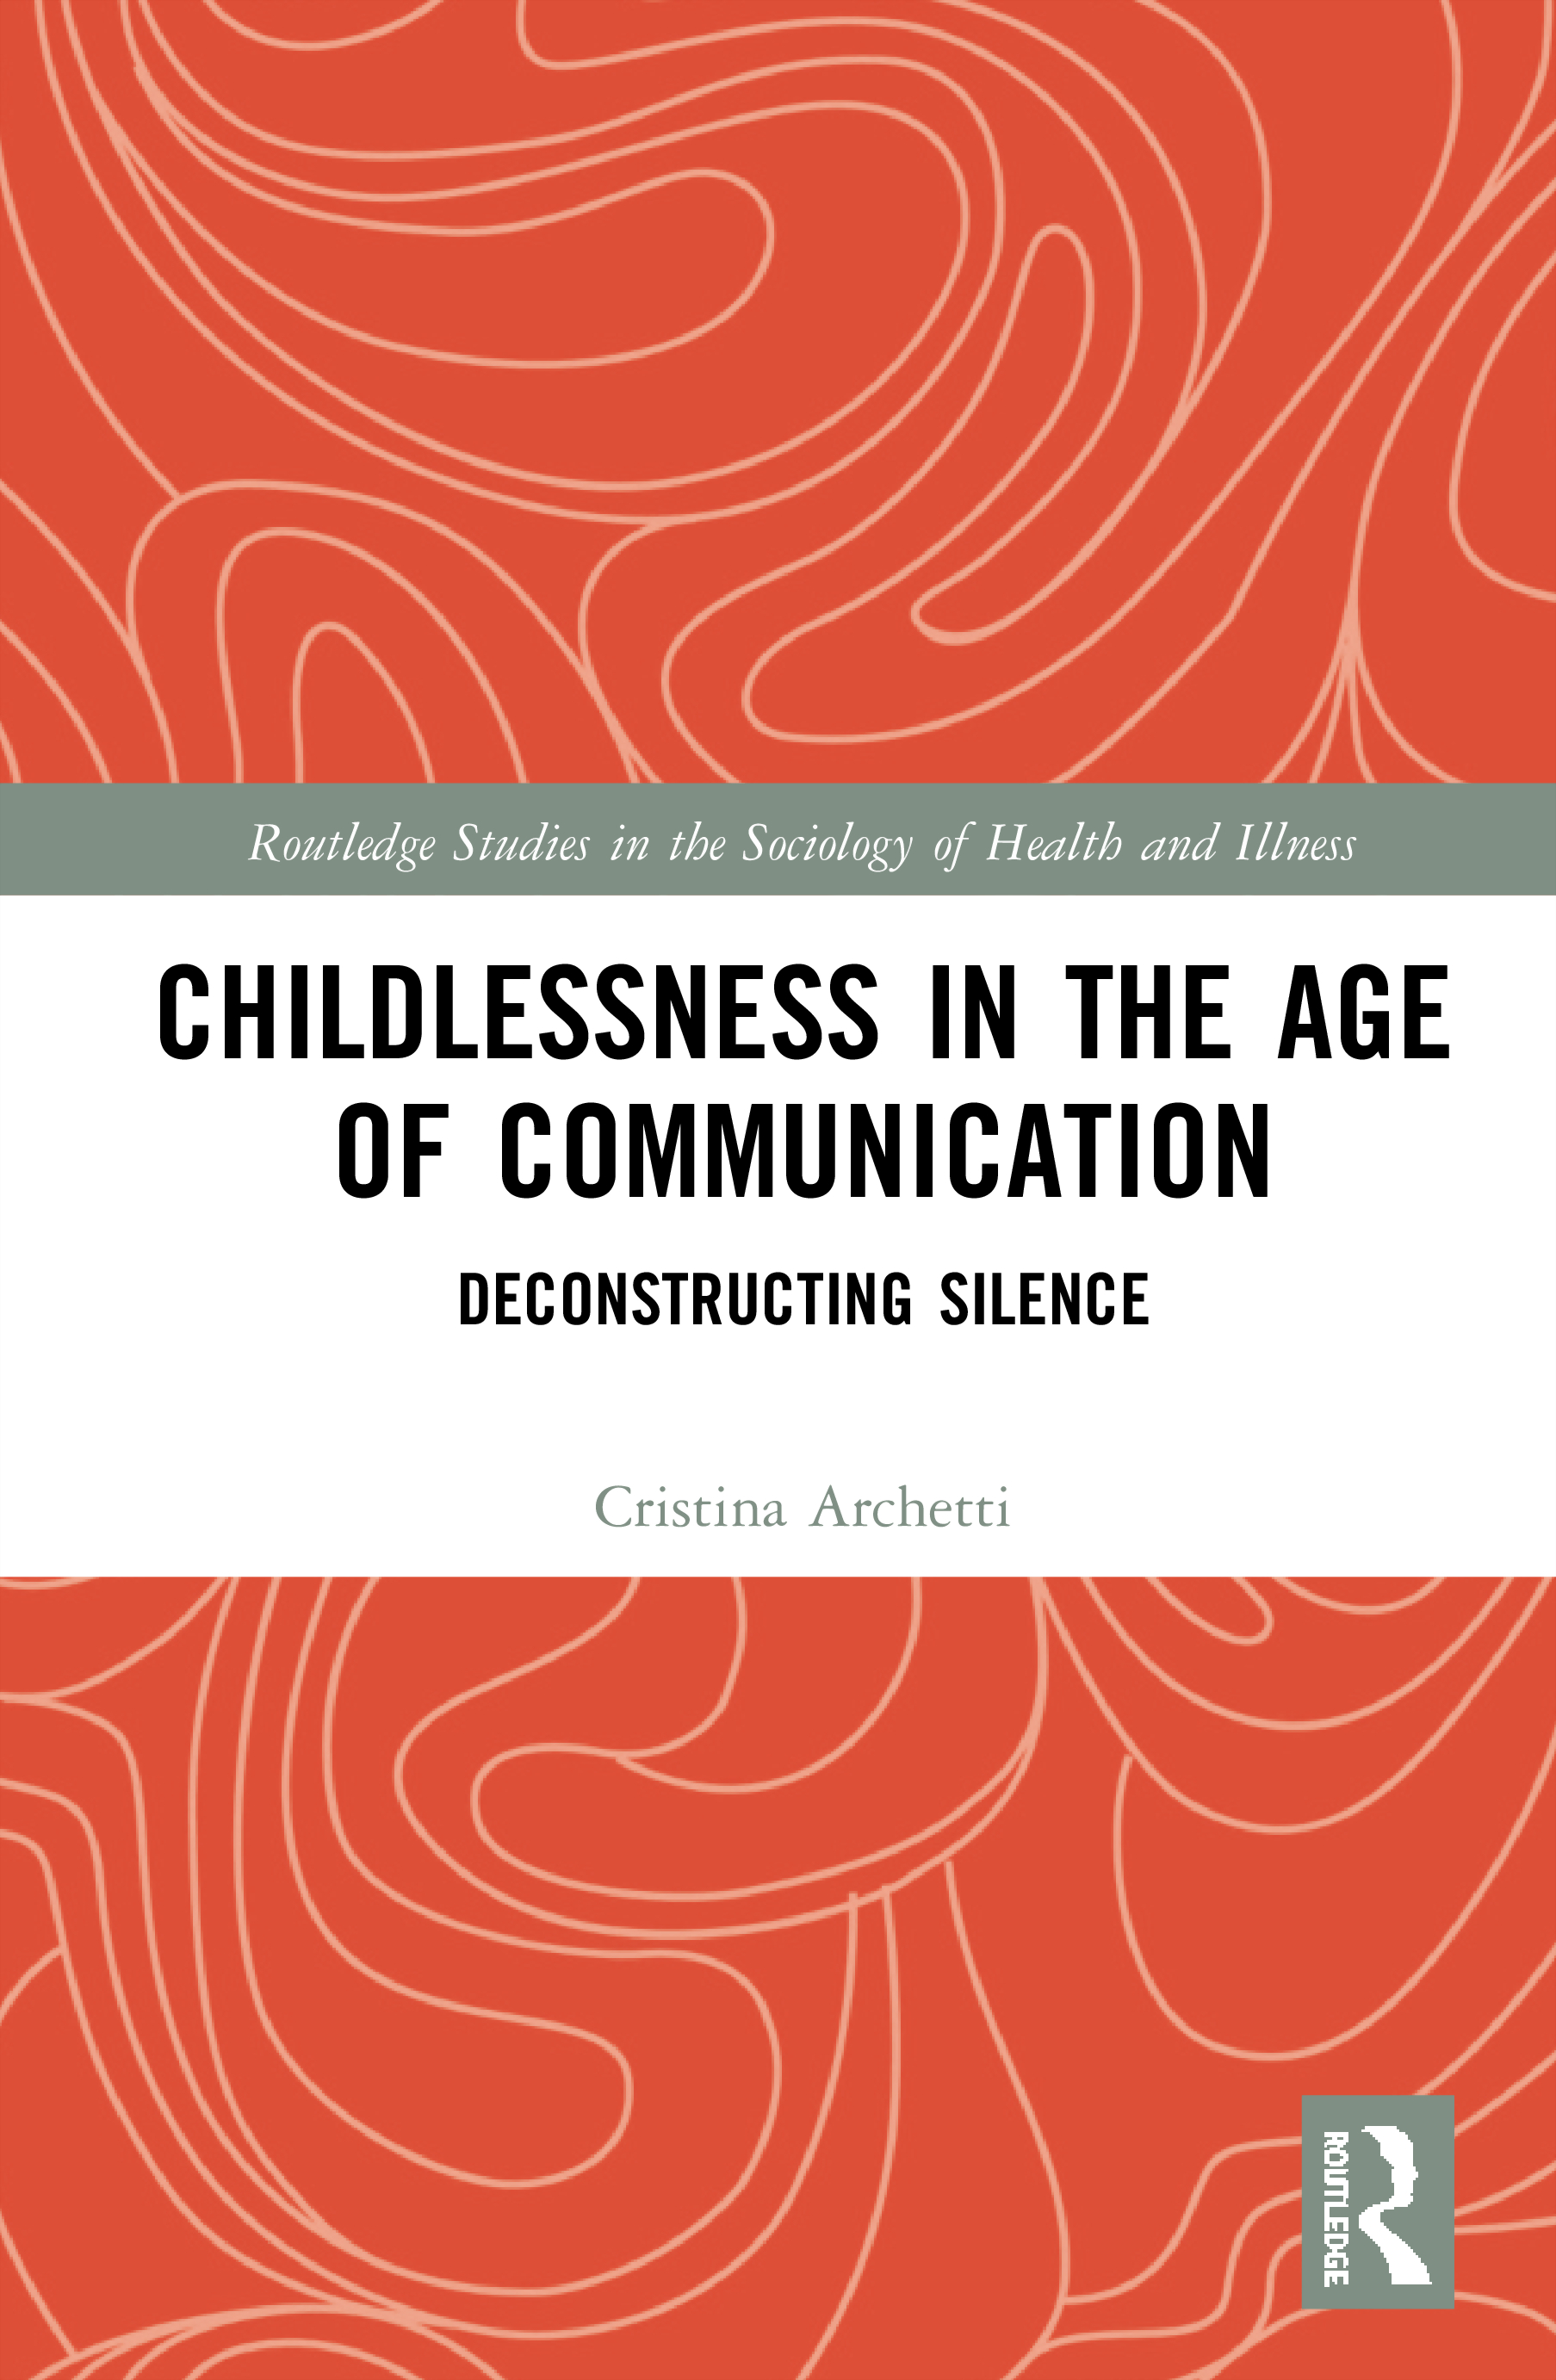 Childlessness in the Age of Communication: Deconstructing Silence book cover